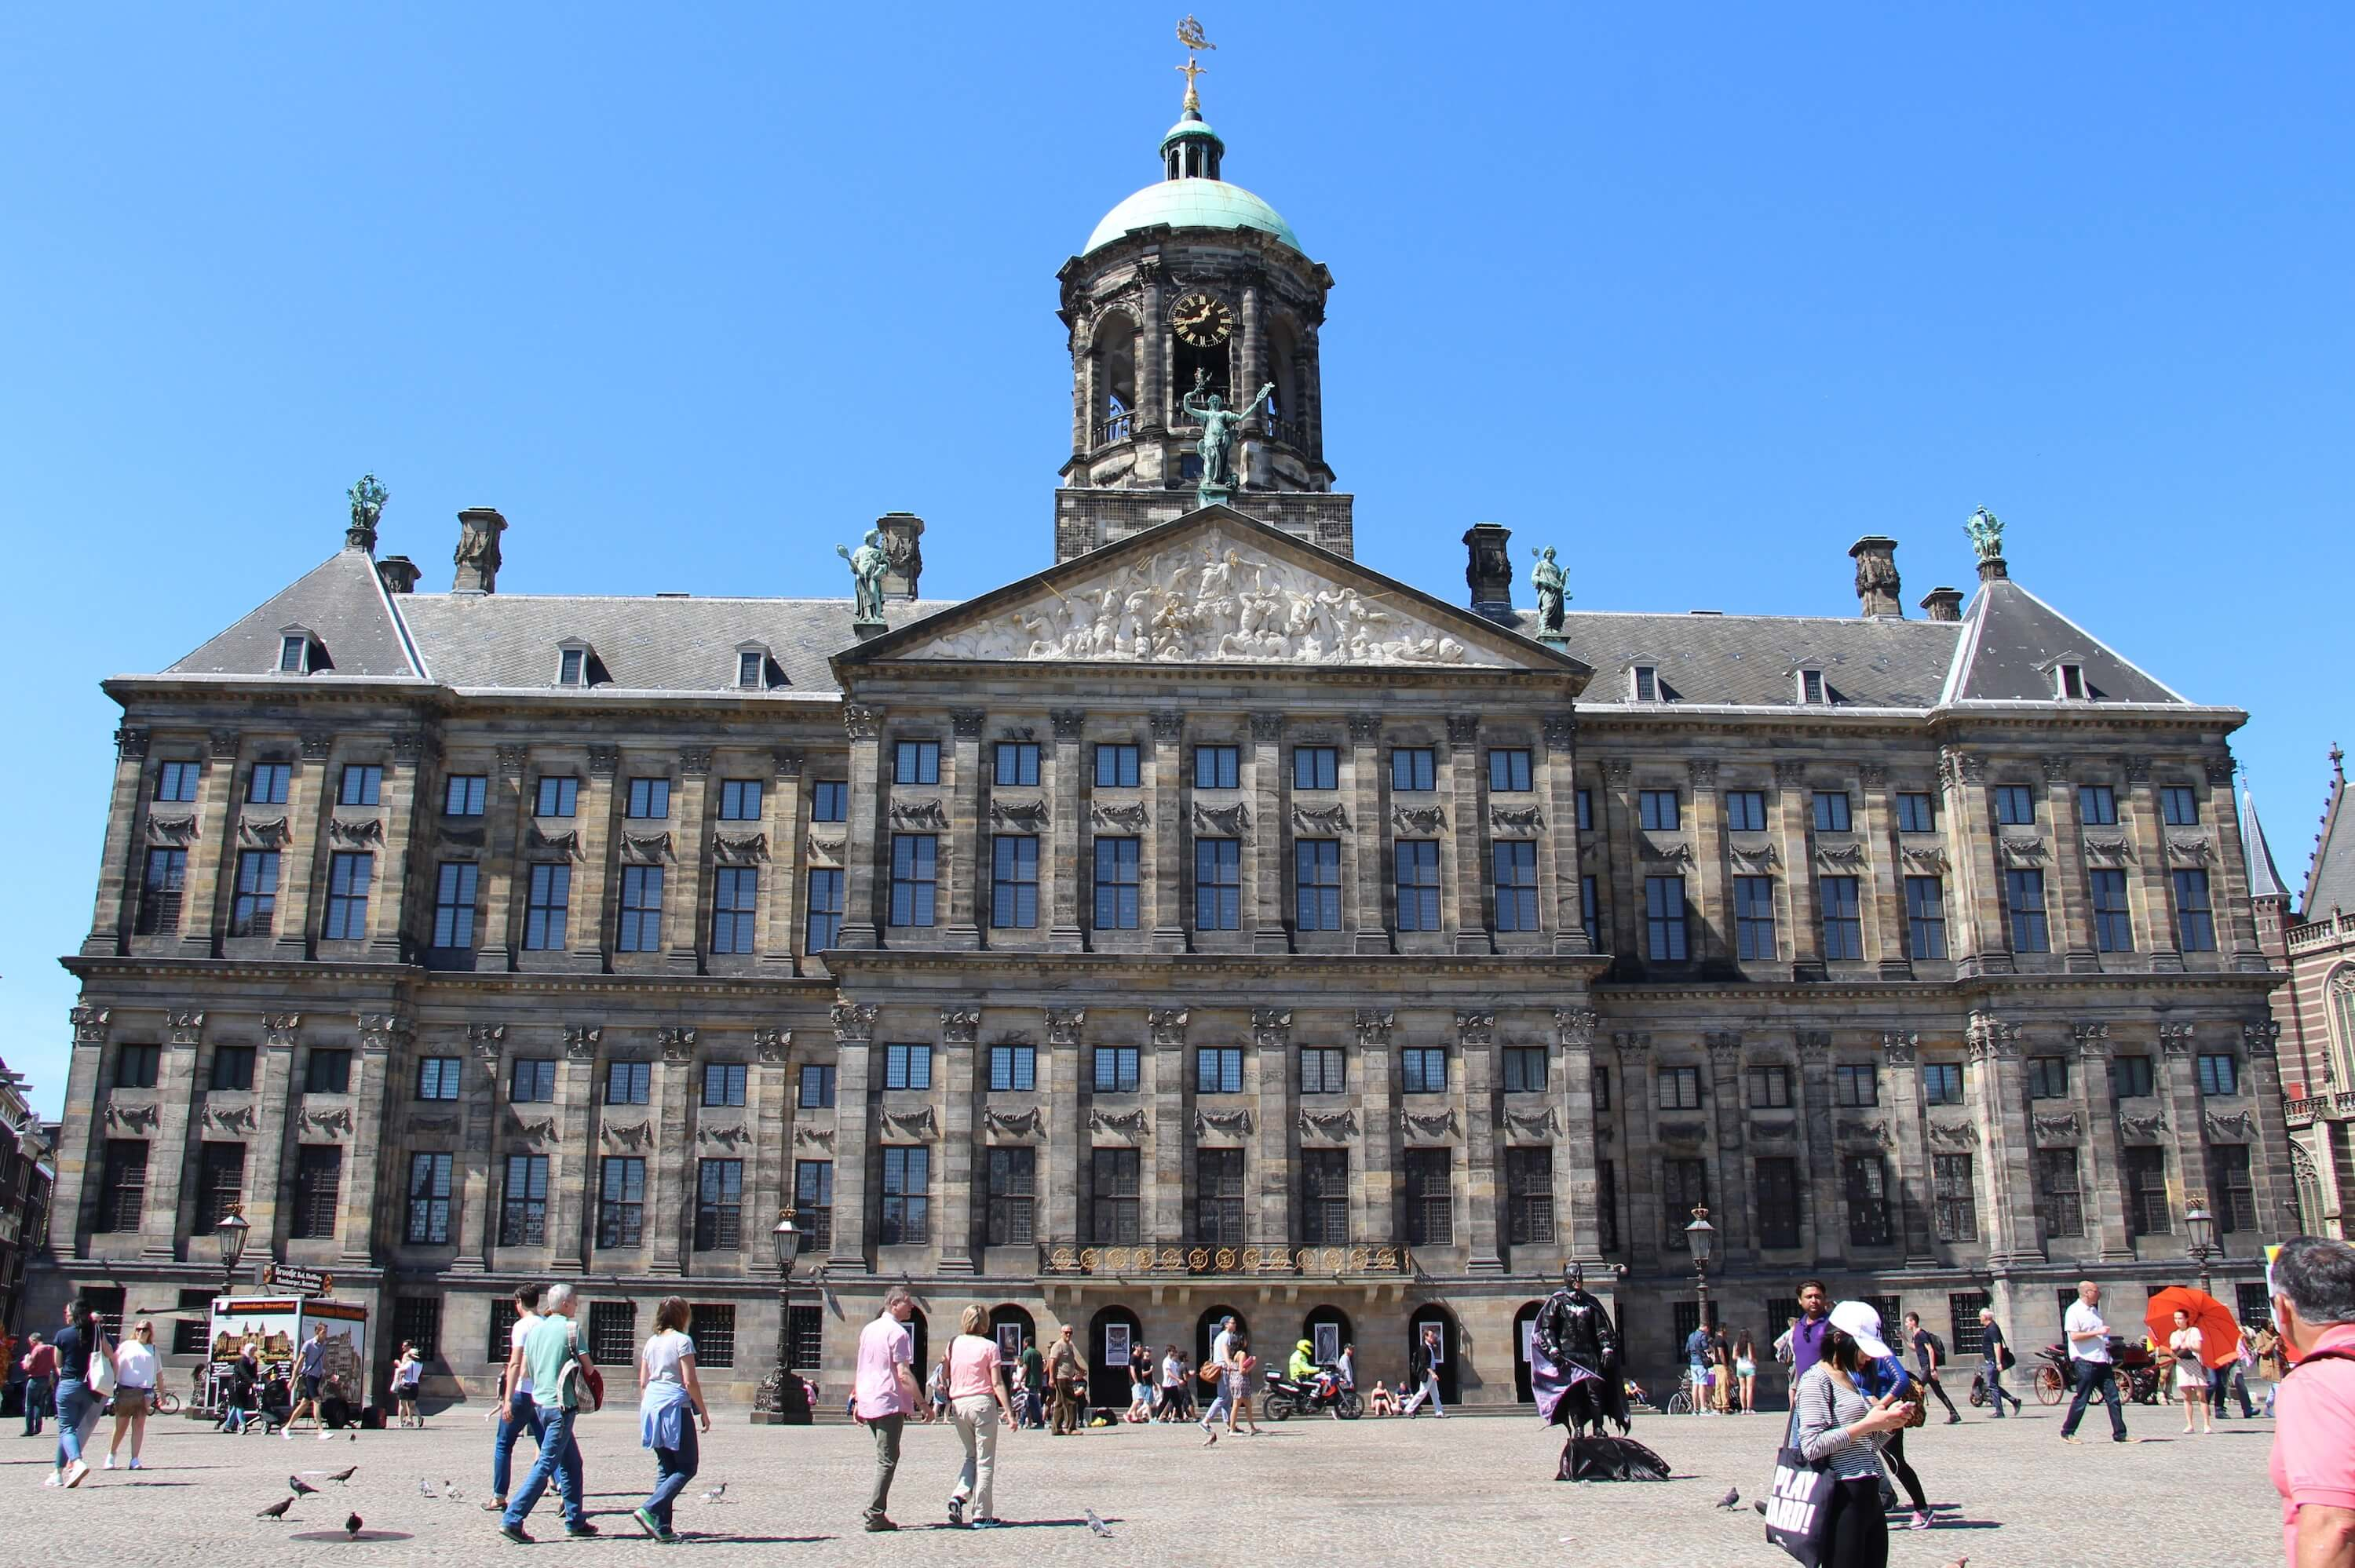 The ultimate guide to a weekend in Amsterdam - The Royal Palace